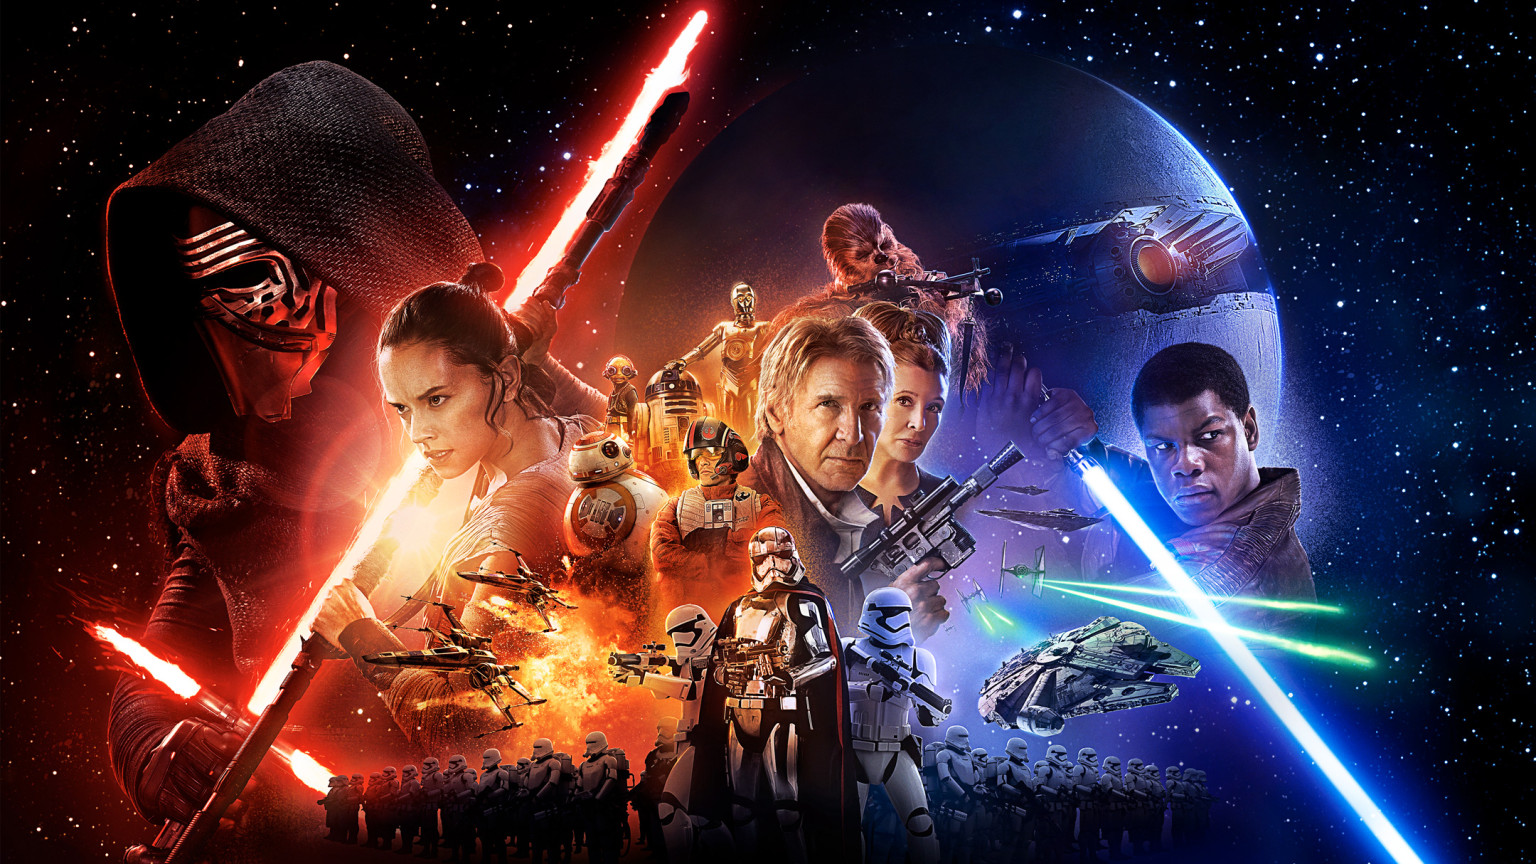 wallpaper-star-wars-force-awakens